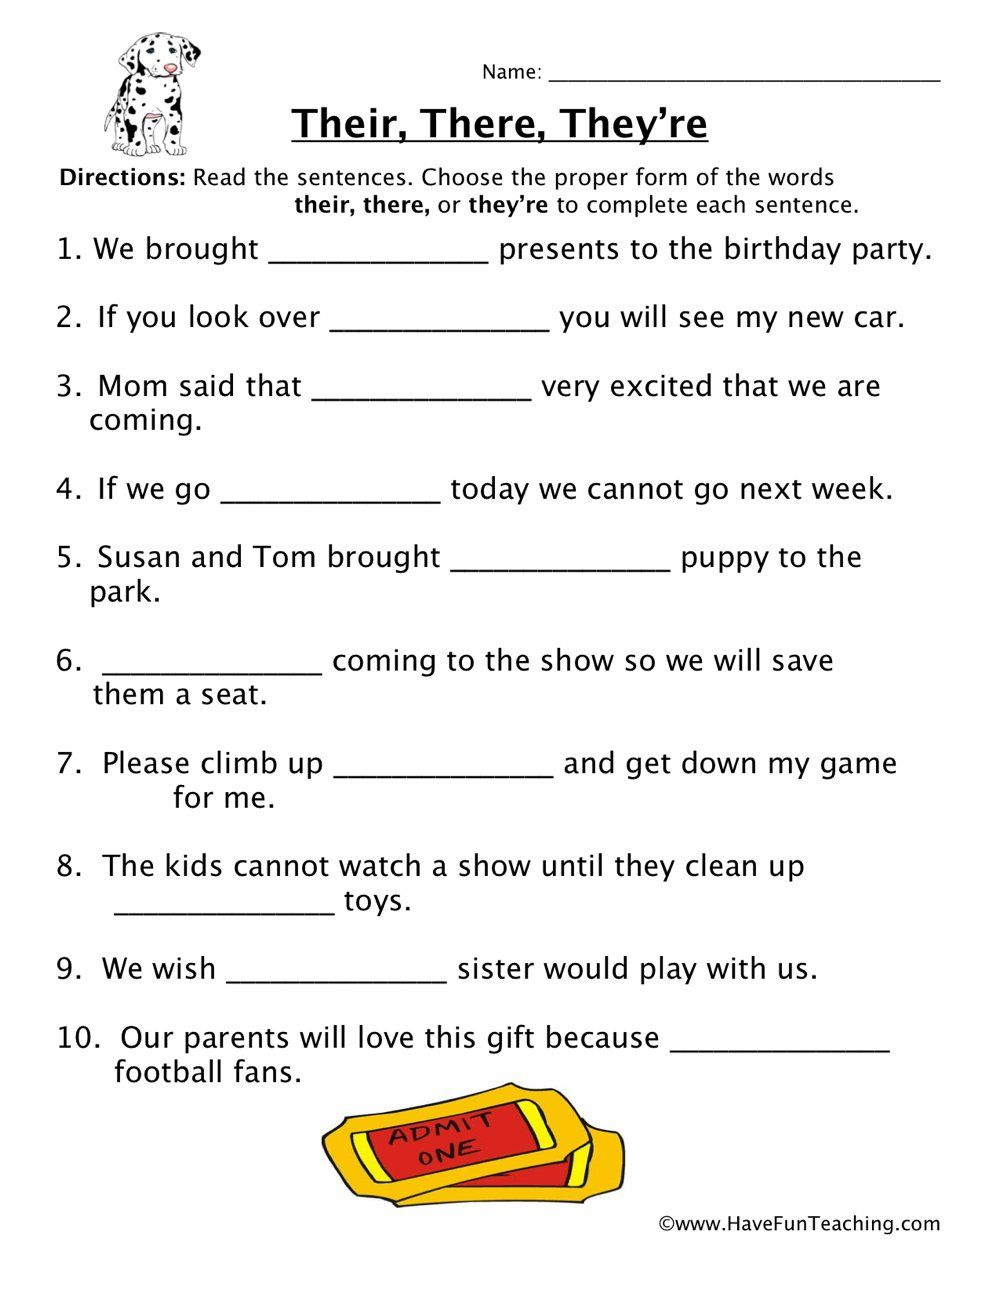 Their There They Re Homophones Worksheet In 2020 Homophones Worksheets Super Teacher Worksheets Vocabulary Worksheets